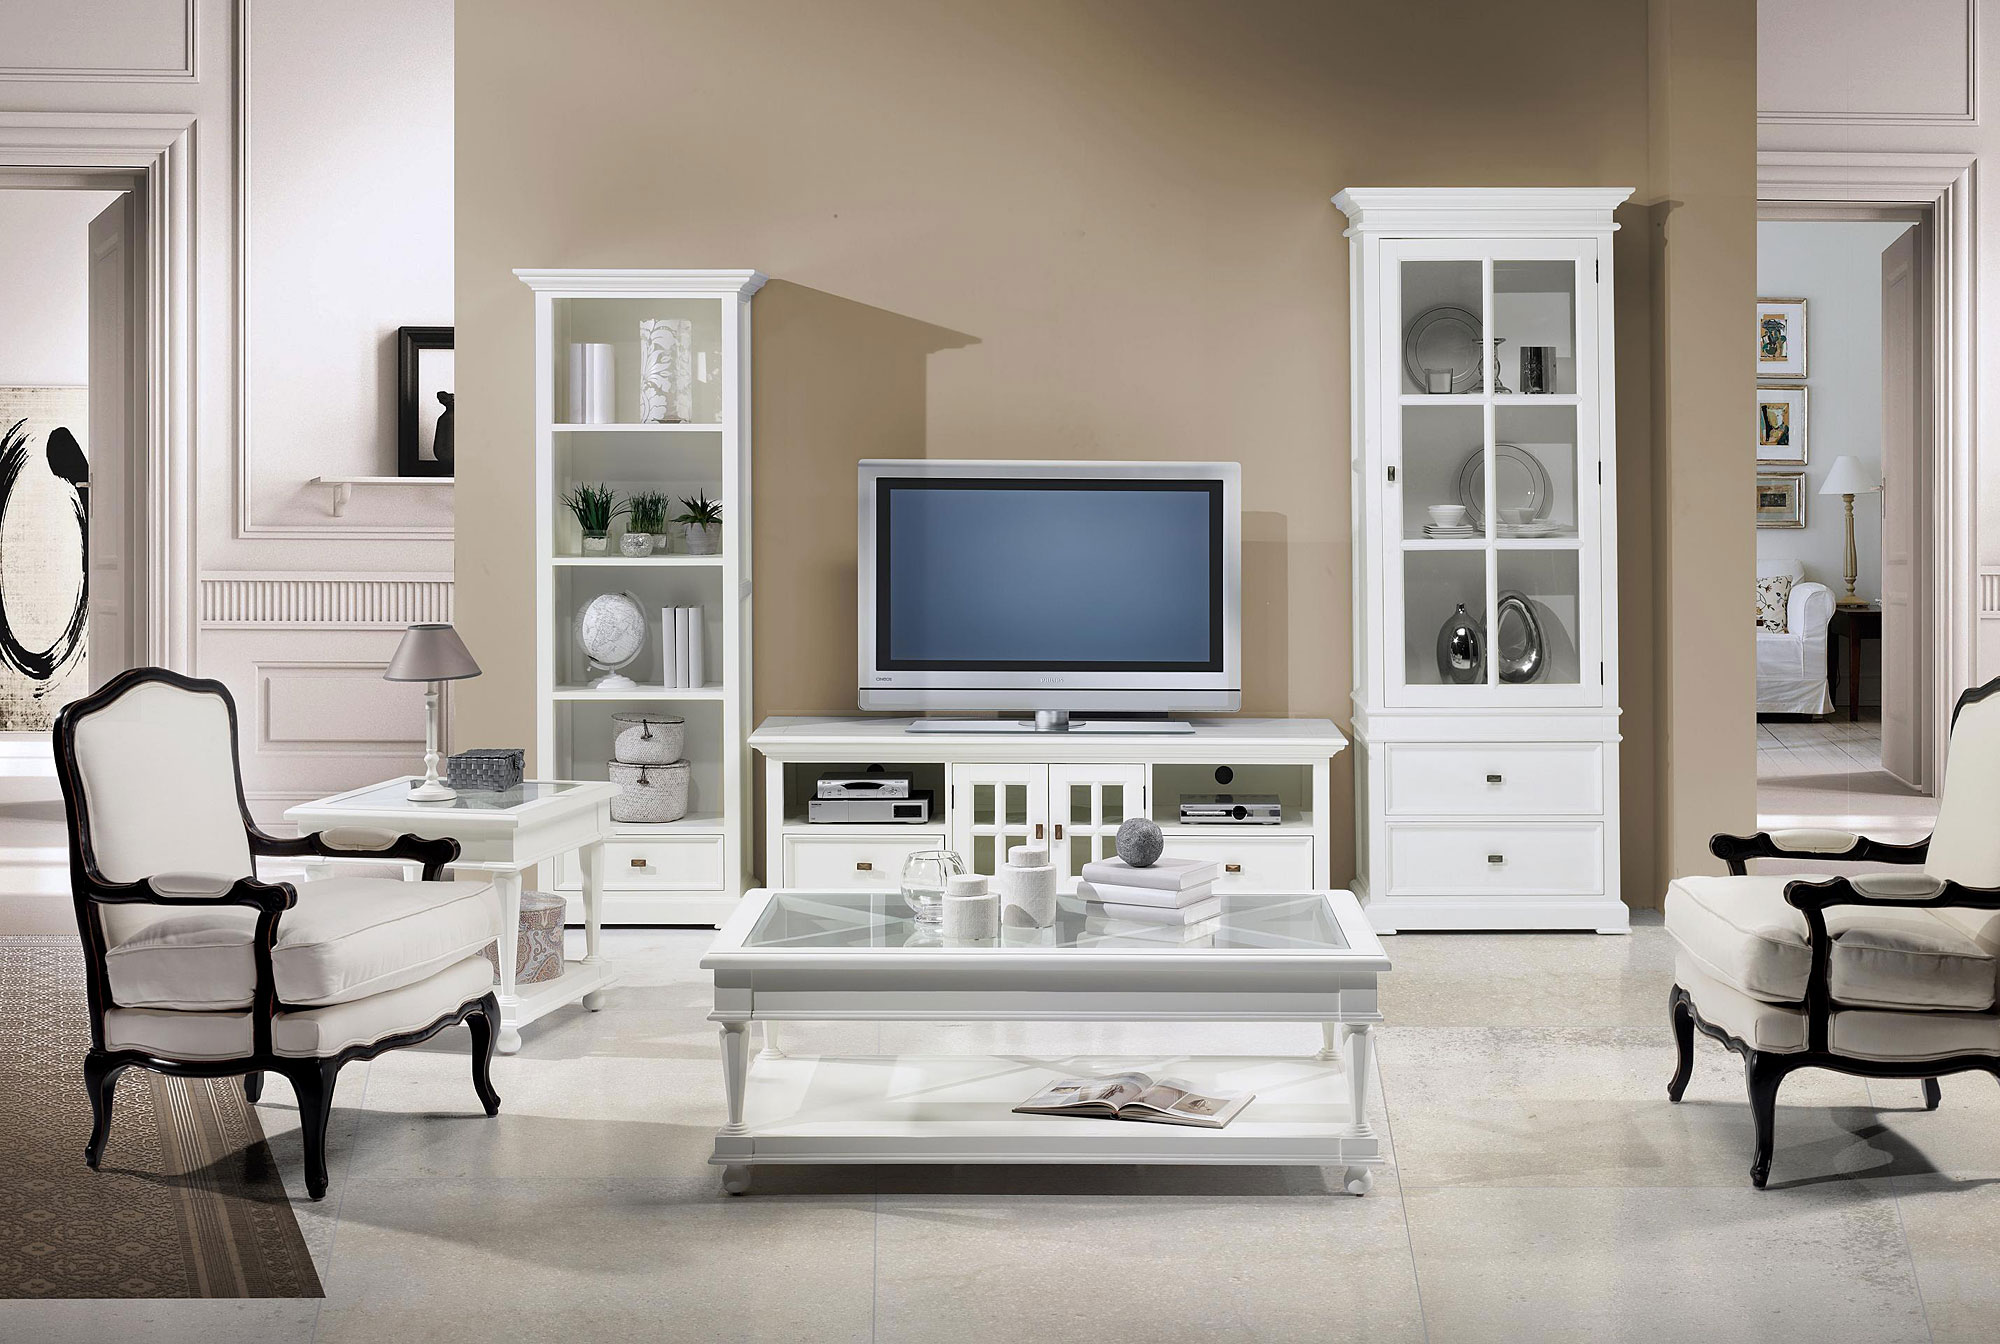 Decoracion mueble sofa muebles salon blanco - Salon en blanco ...